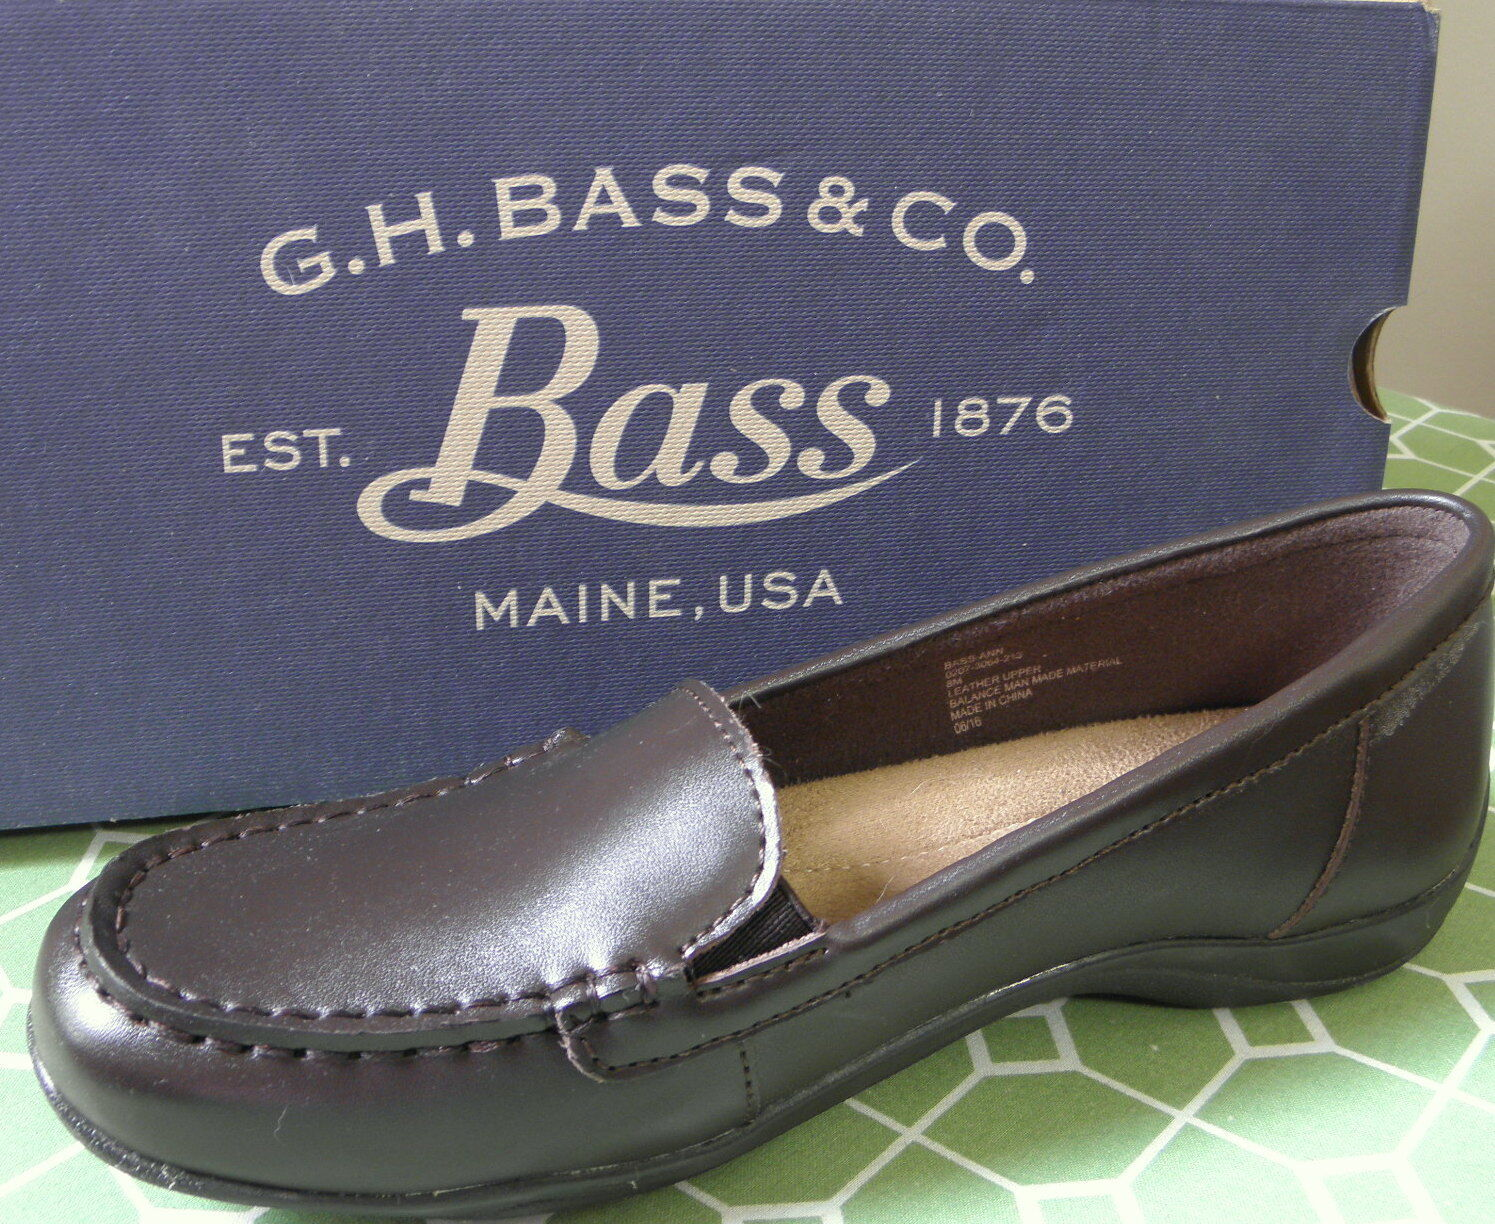 G H BASS & CO. Brown Leather Moccasin Style Slip On Loafer shoes Size 8 M